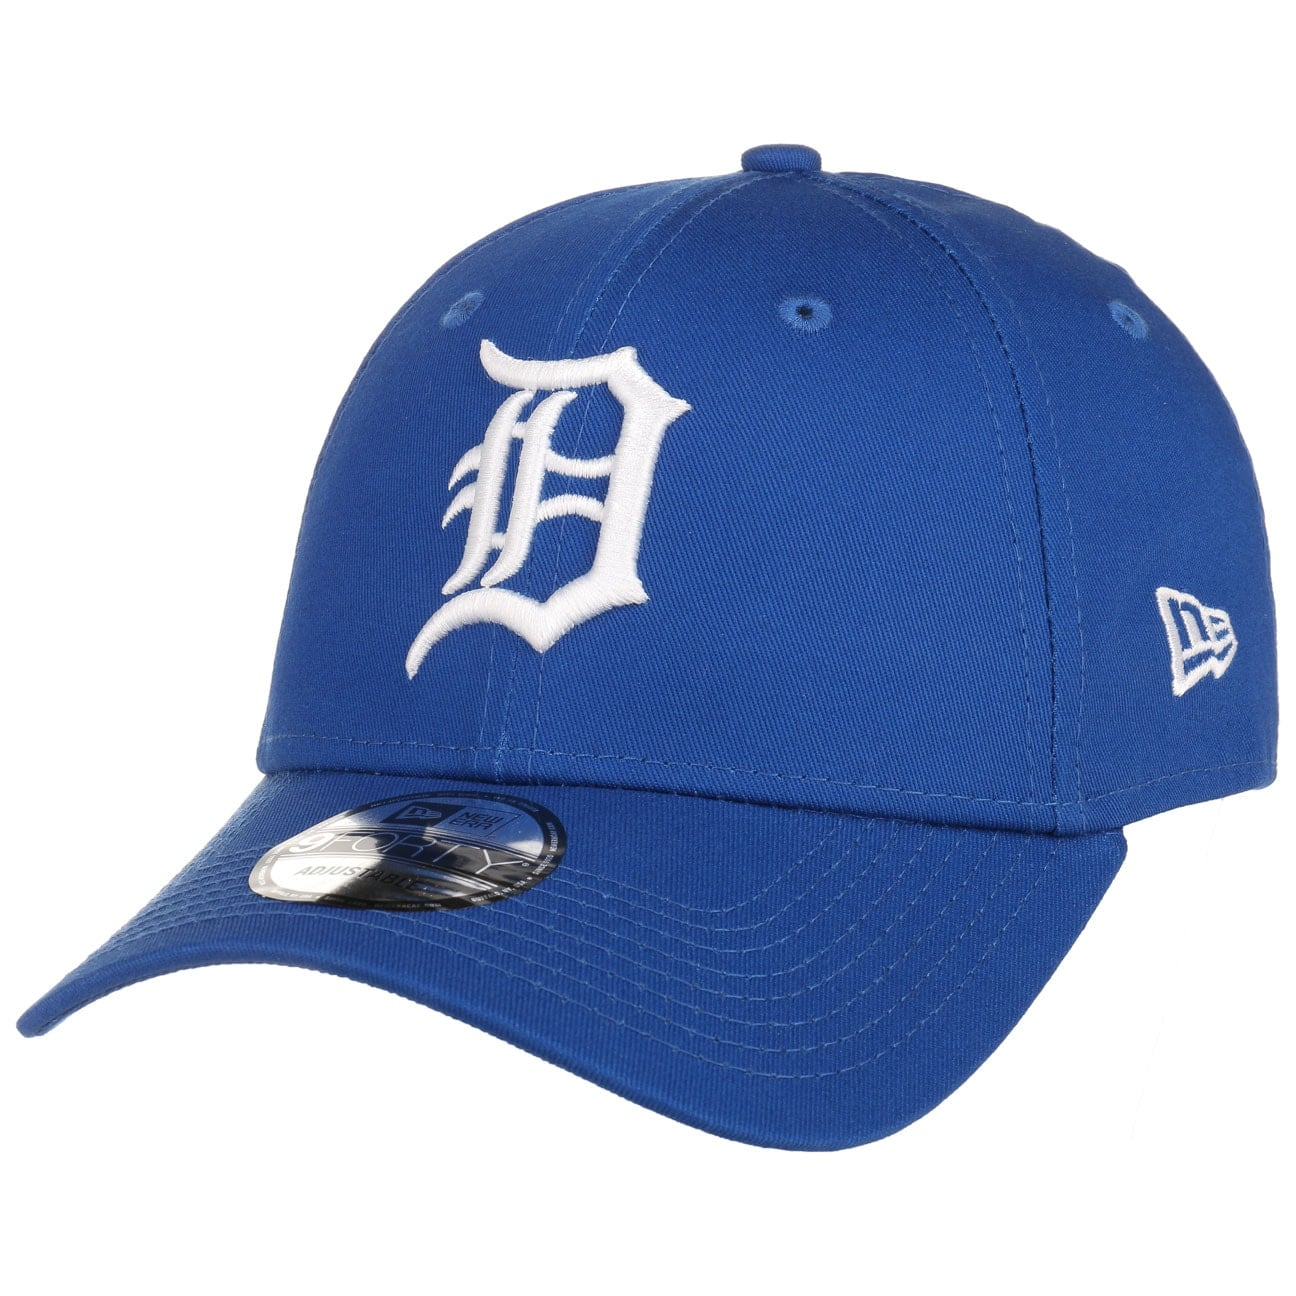 9forty-essential-tigers-cap-by-new-era-basecap